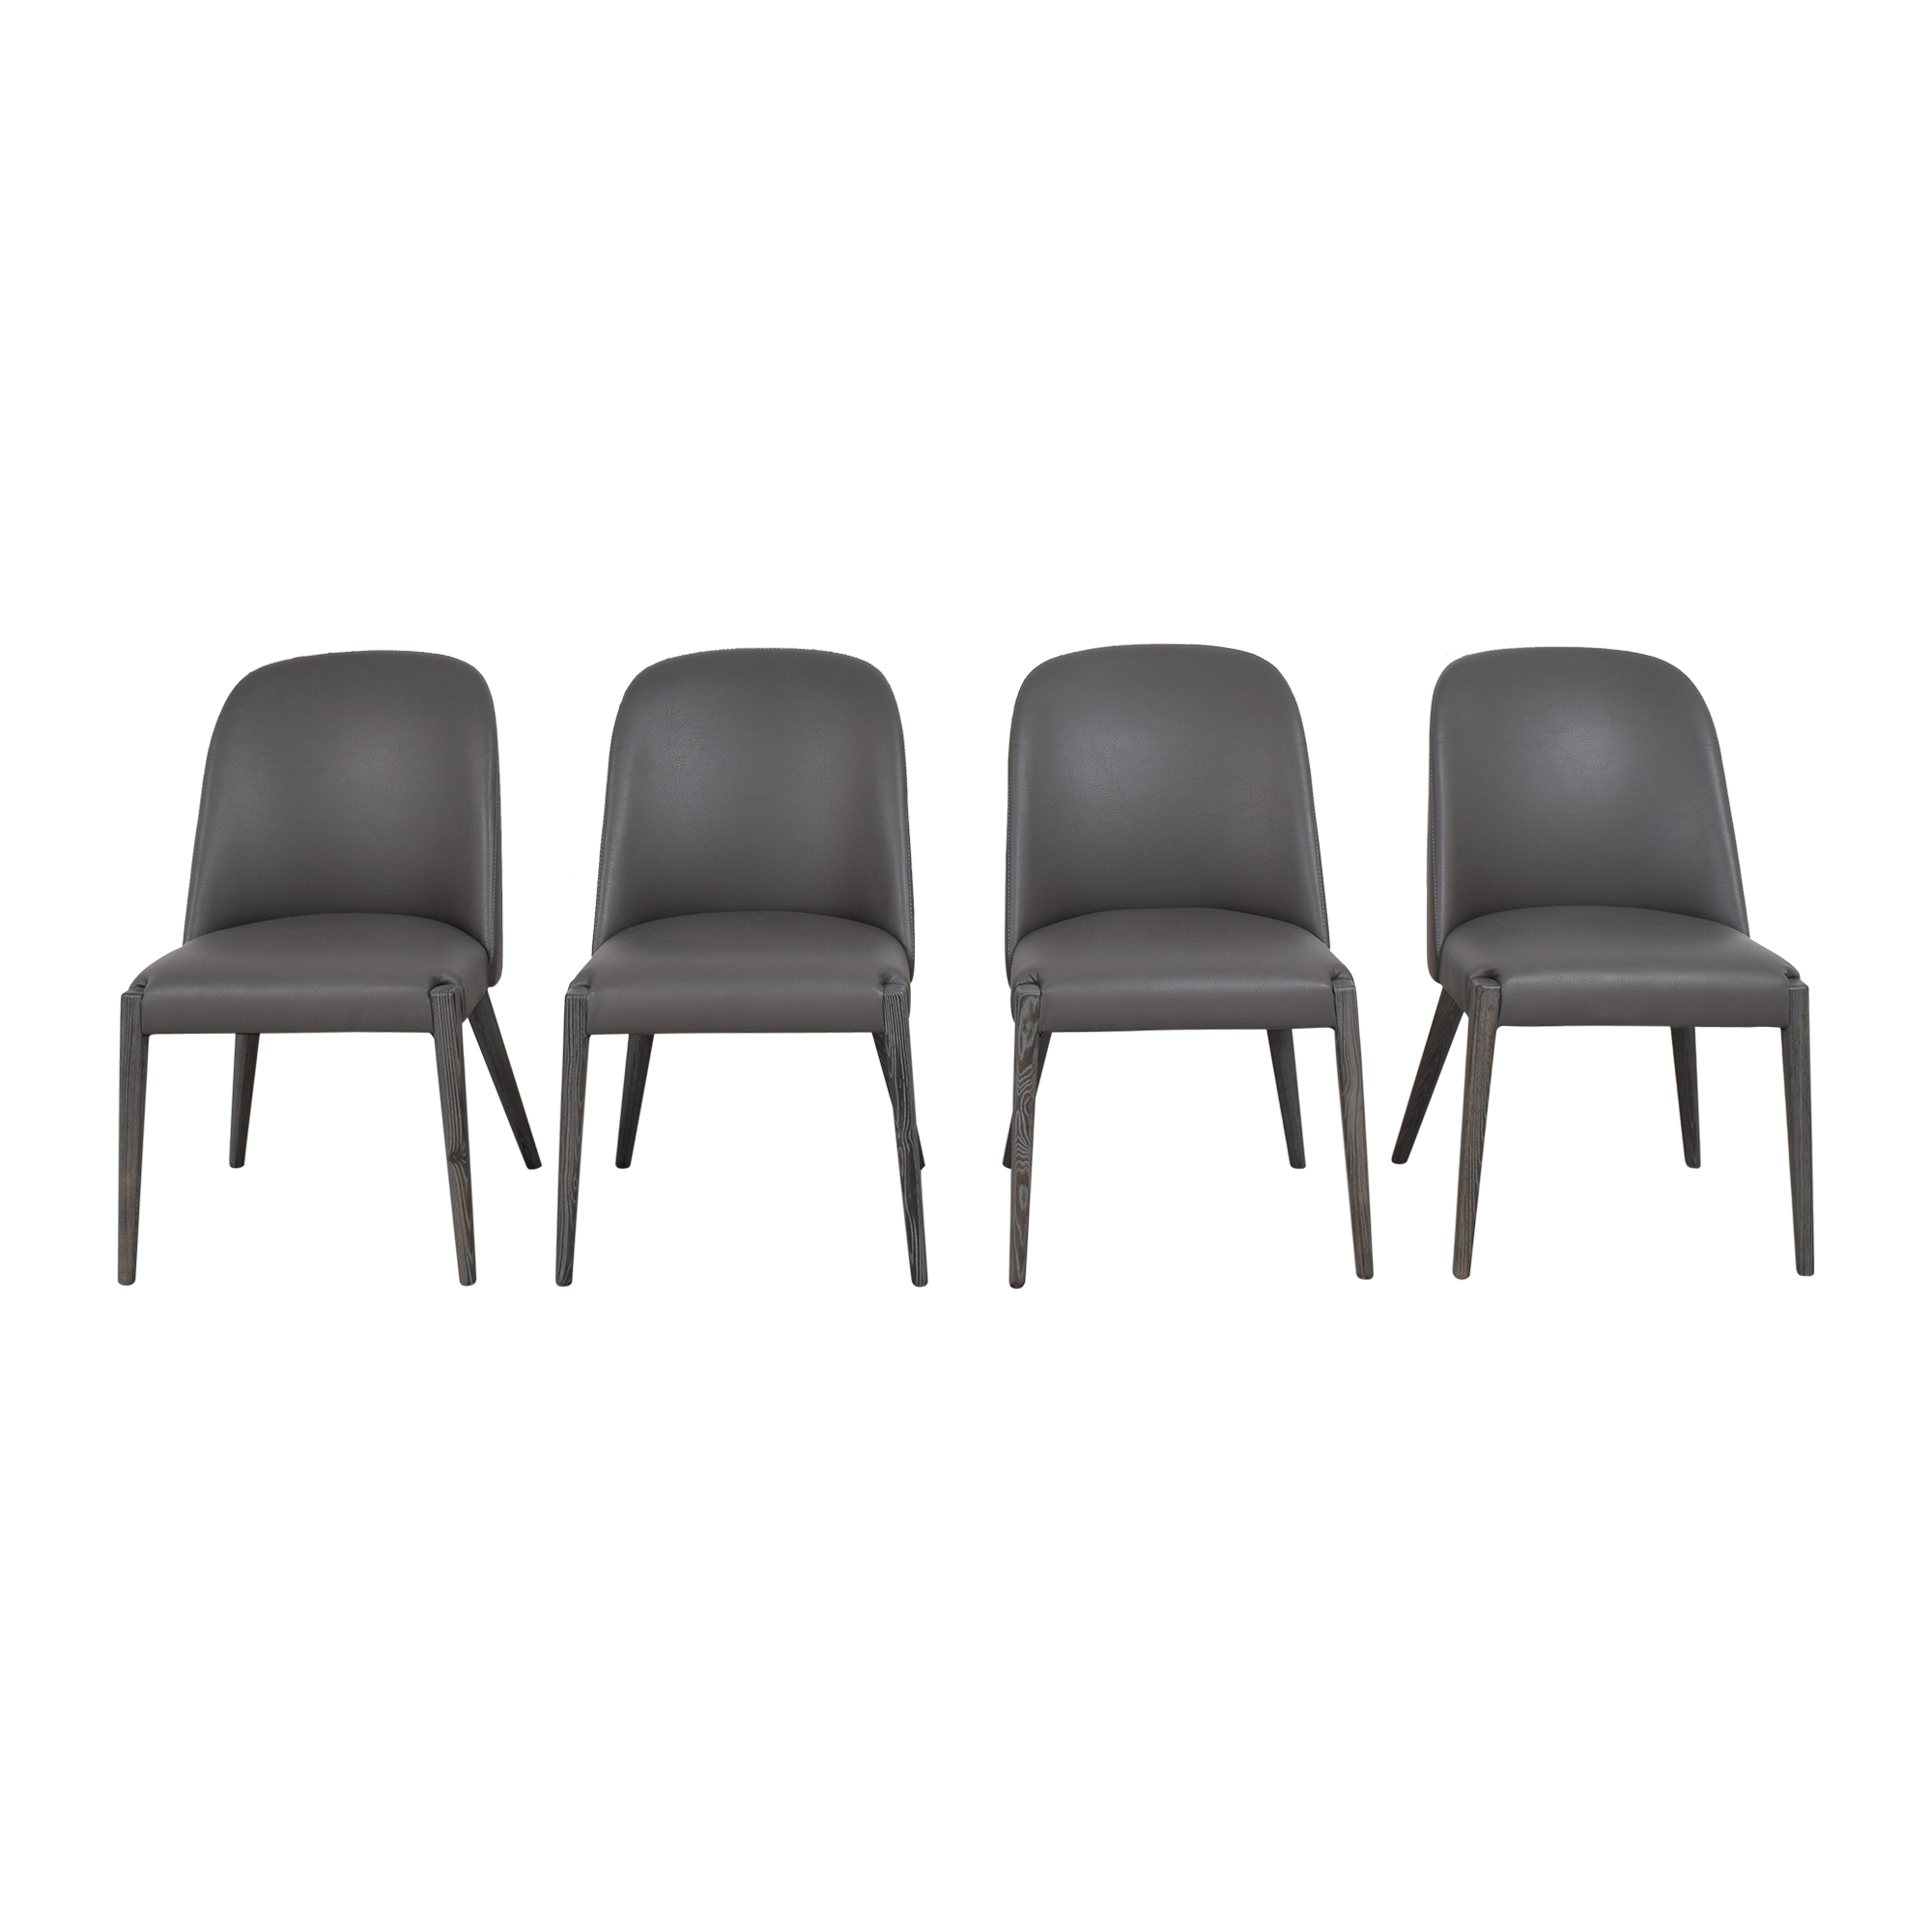 Interlude Alecia Dining Chairs / Dining Chairs